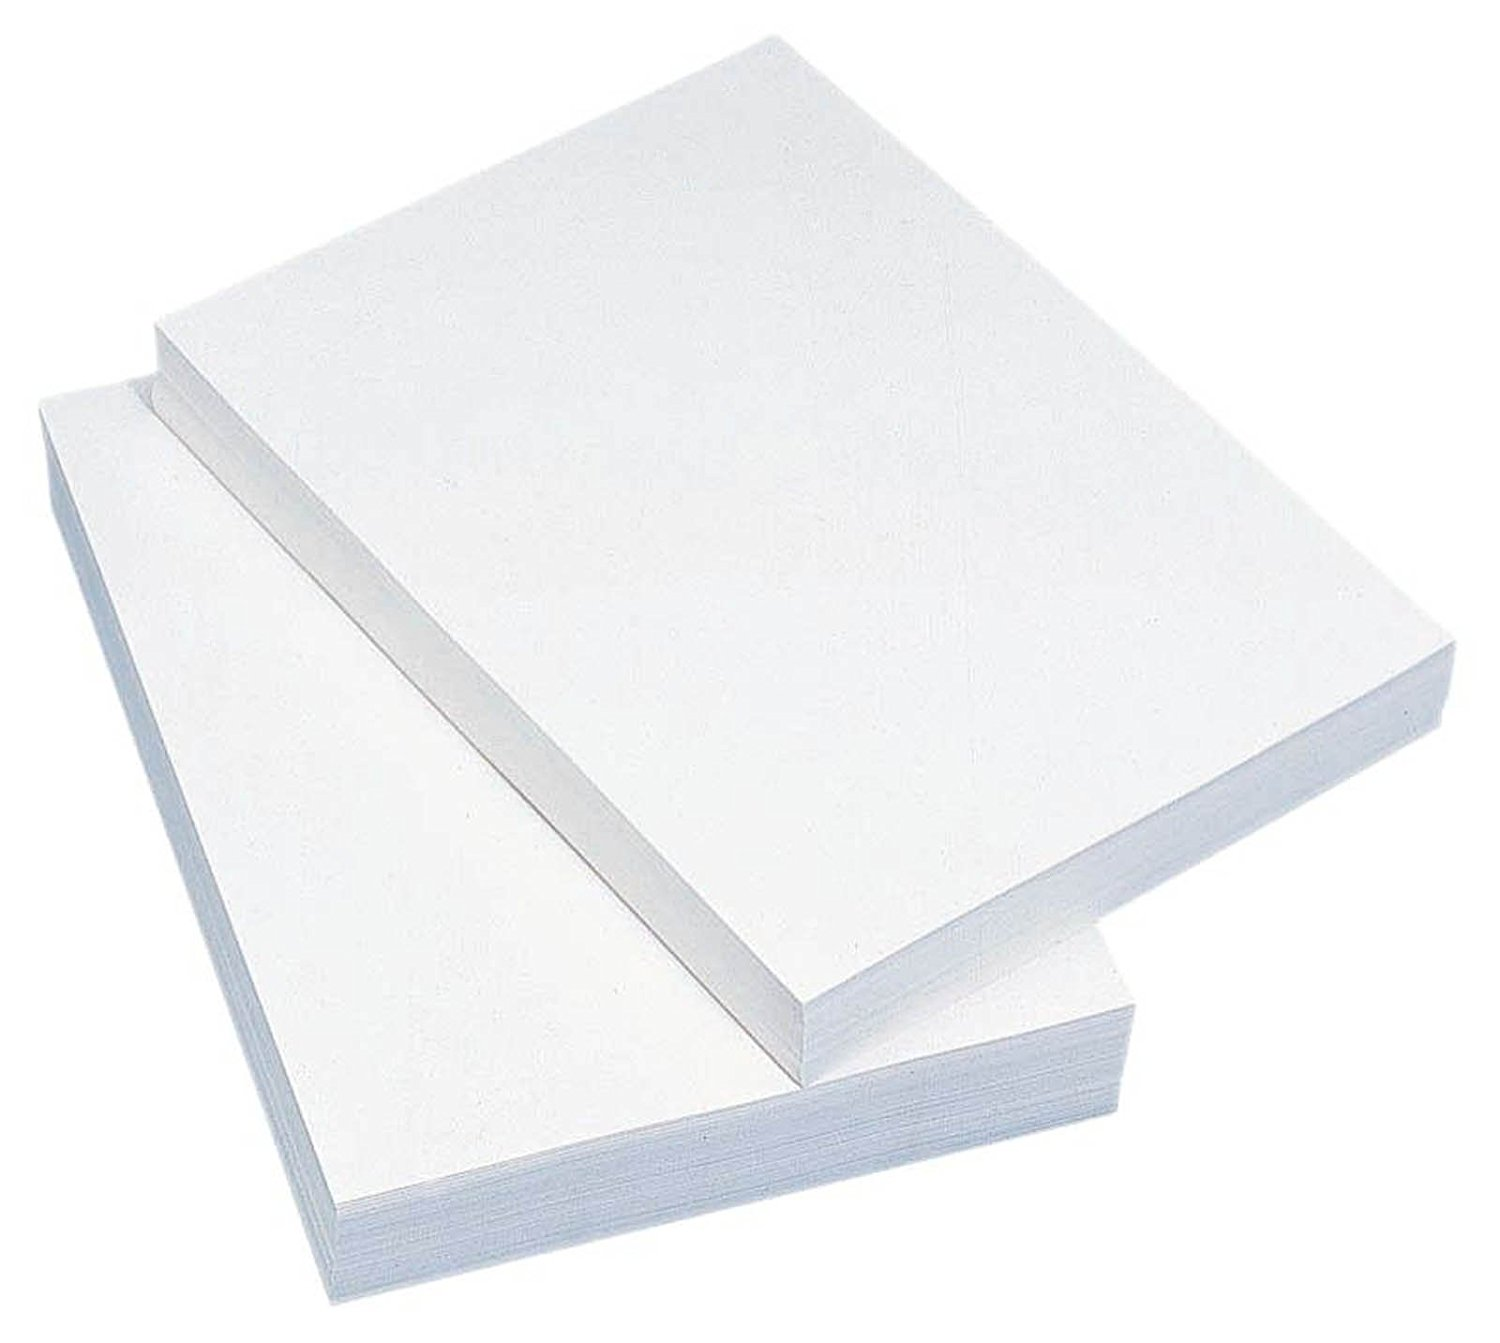 A3 Navigator Everyday Paper A3 80gsm White (Box 5 Reams)